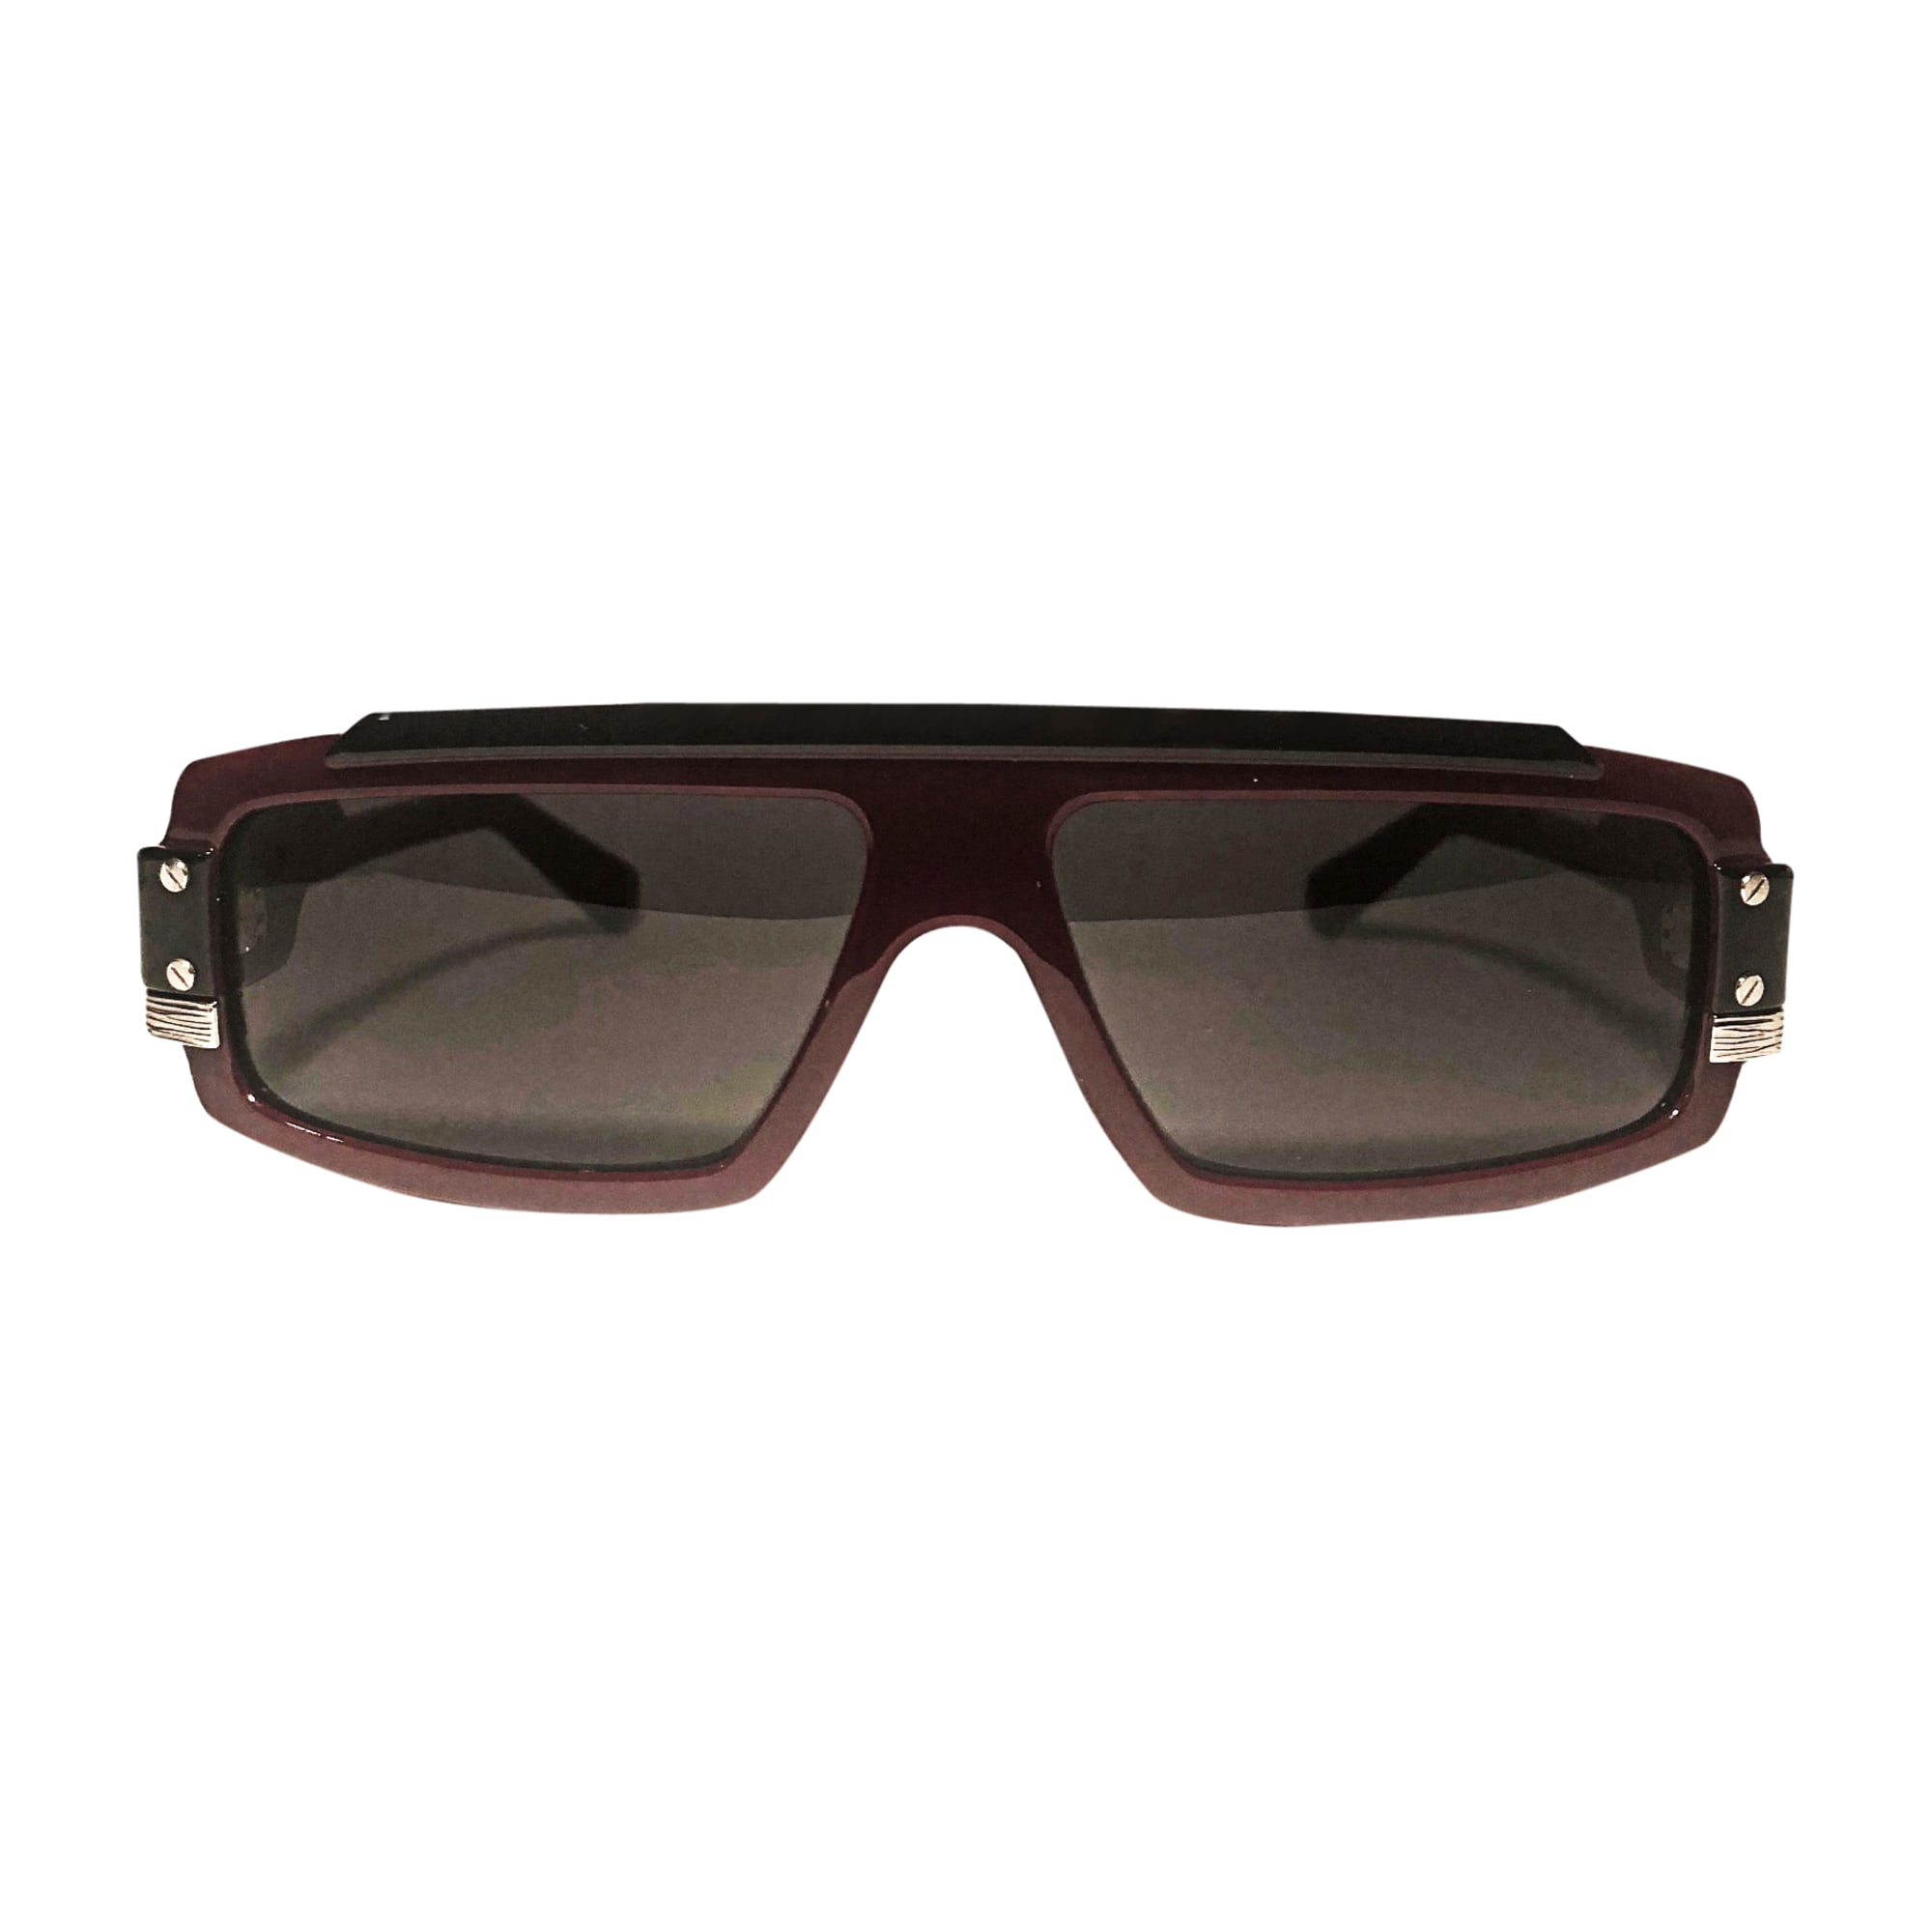 Sonnenbrille MARC JACOBS rot - 7818298